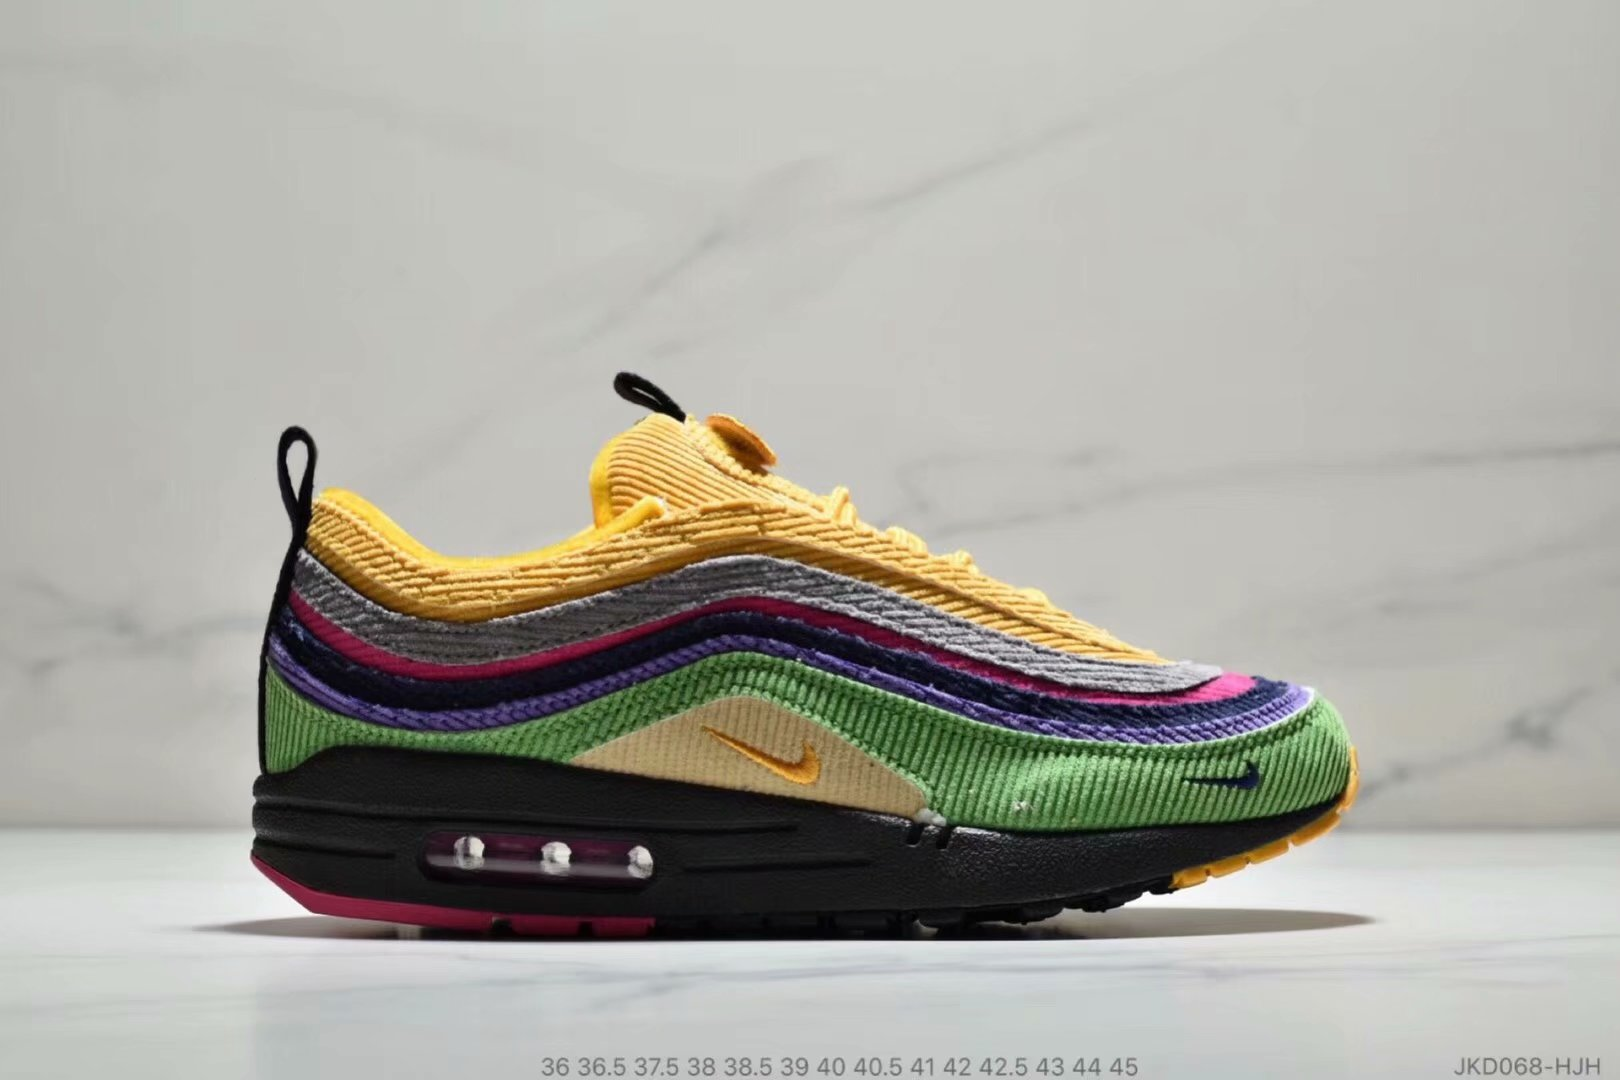 Nike Air Max 87 1 Sean Wotherspoon Grass Green Yellow Grey Purple Black - www.wholesaleflyknit.com